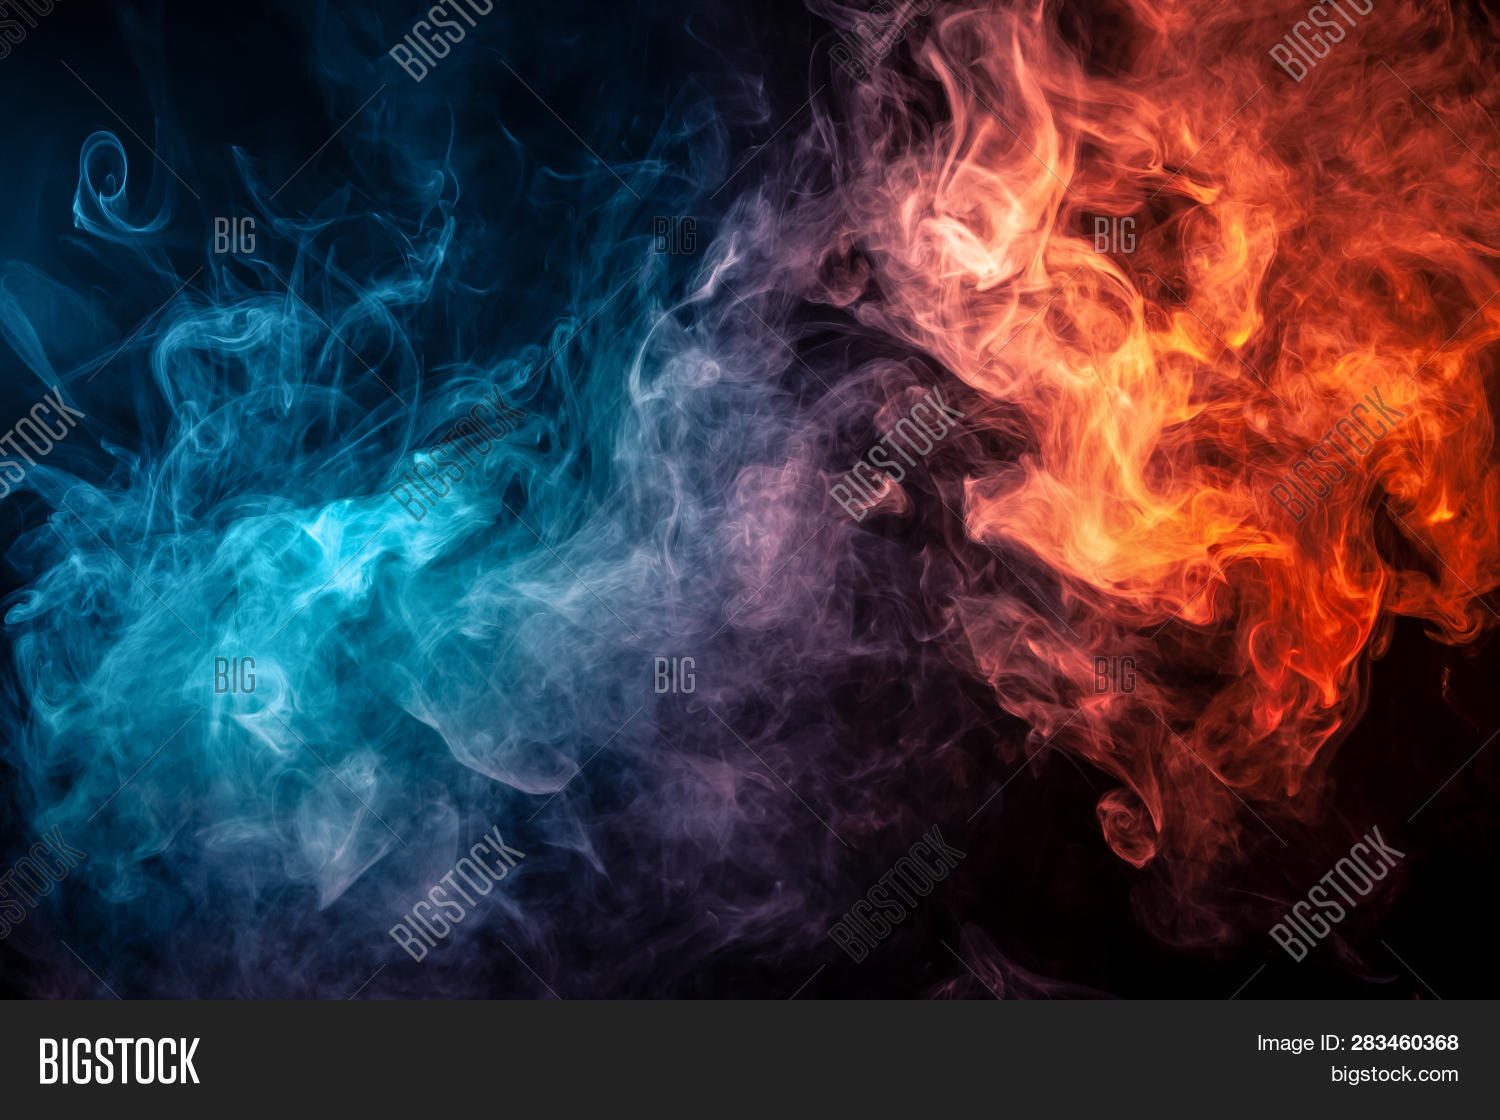 Abstract Art Colored Image Photo Free Trial Bigstock